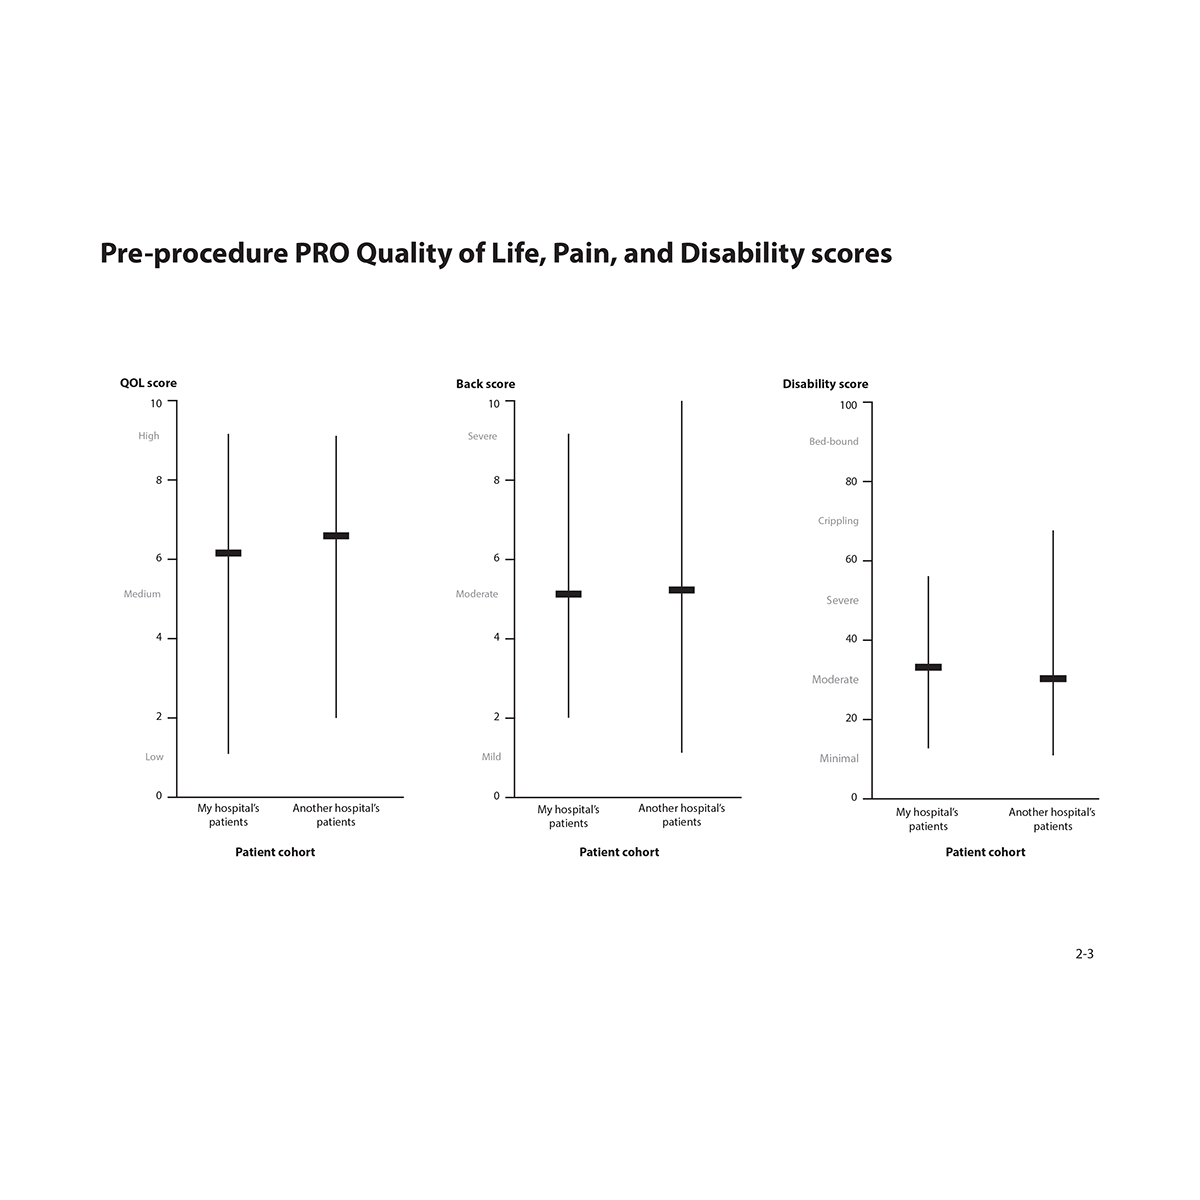 Graph showing Range of pre-procedure PRO pain, quality of life, and disability scores: (compare my hospital to another hospital's patients) shows minimum, maximum, and mean.